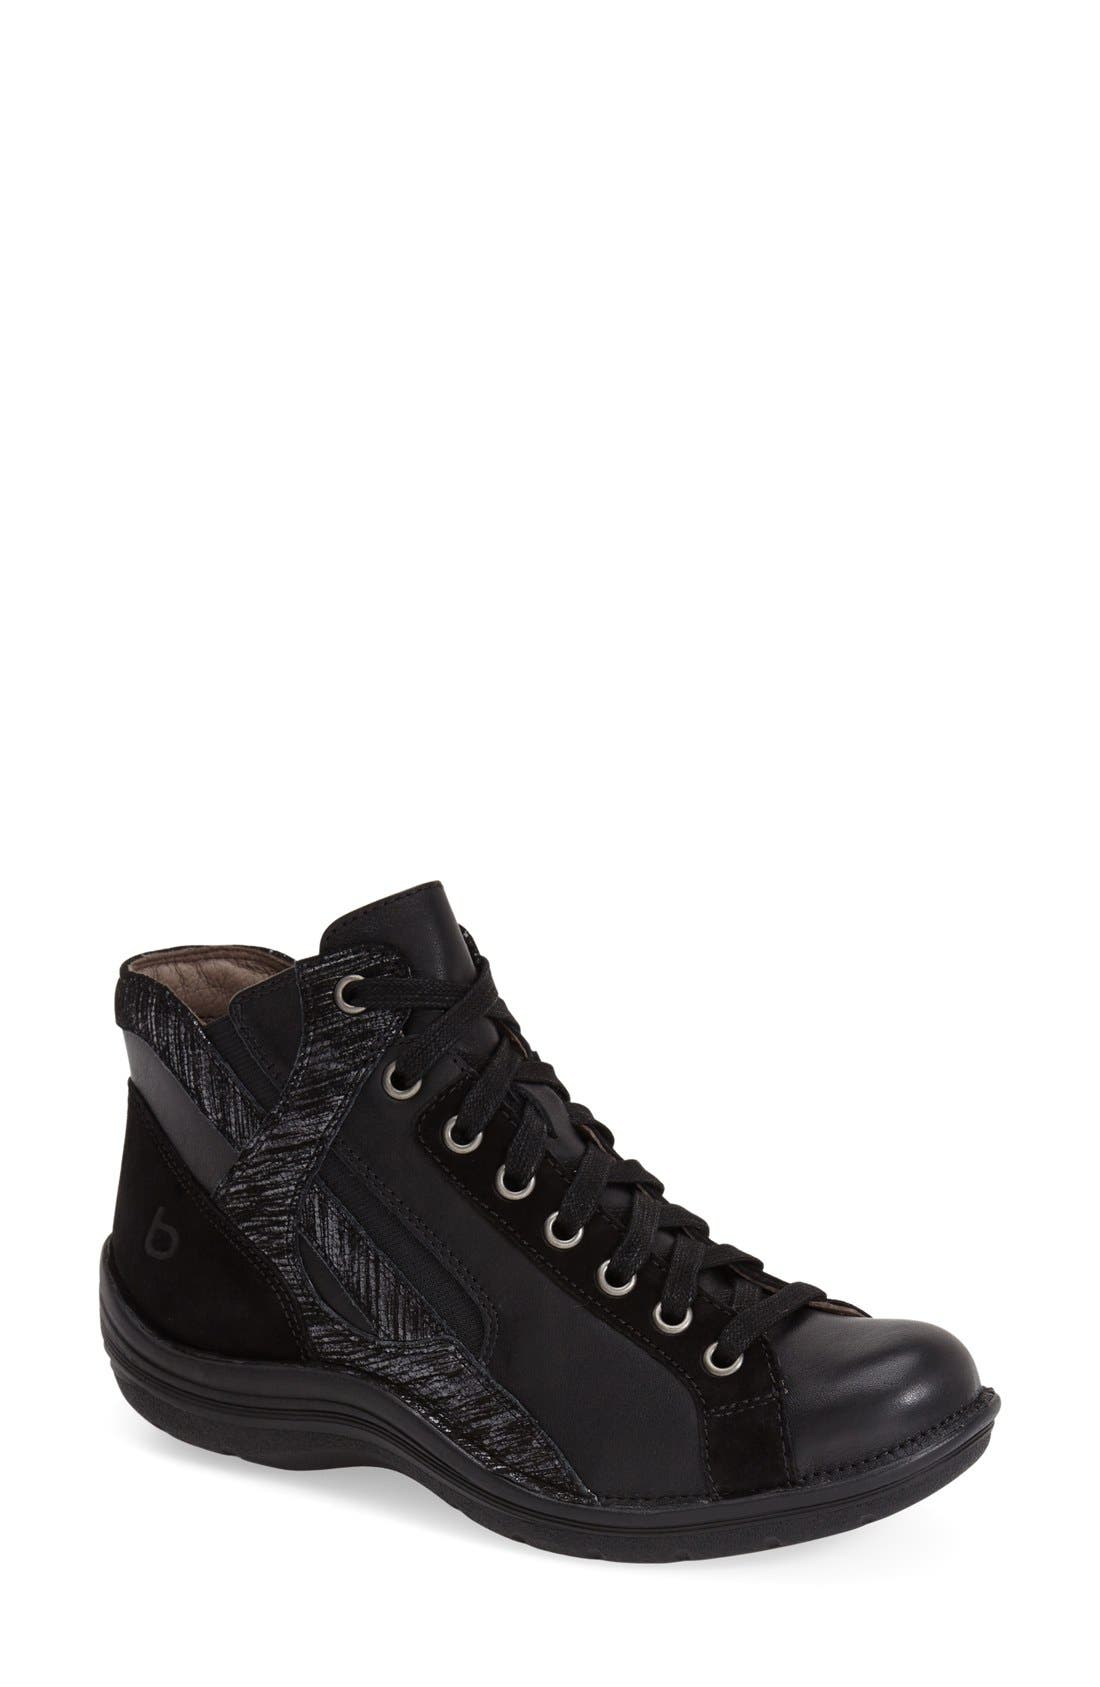 'Orbit' Boot,                             Main thumbnail 1, color,                             Black/ Anthracite Leather